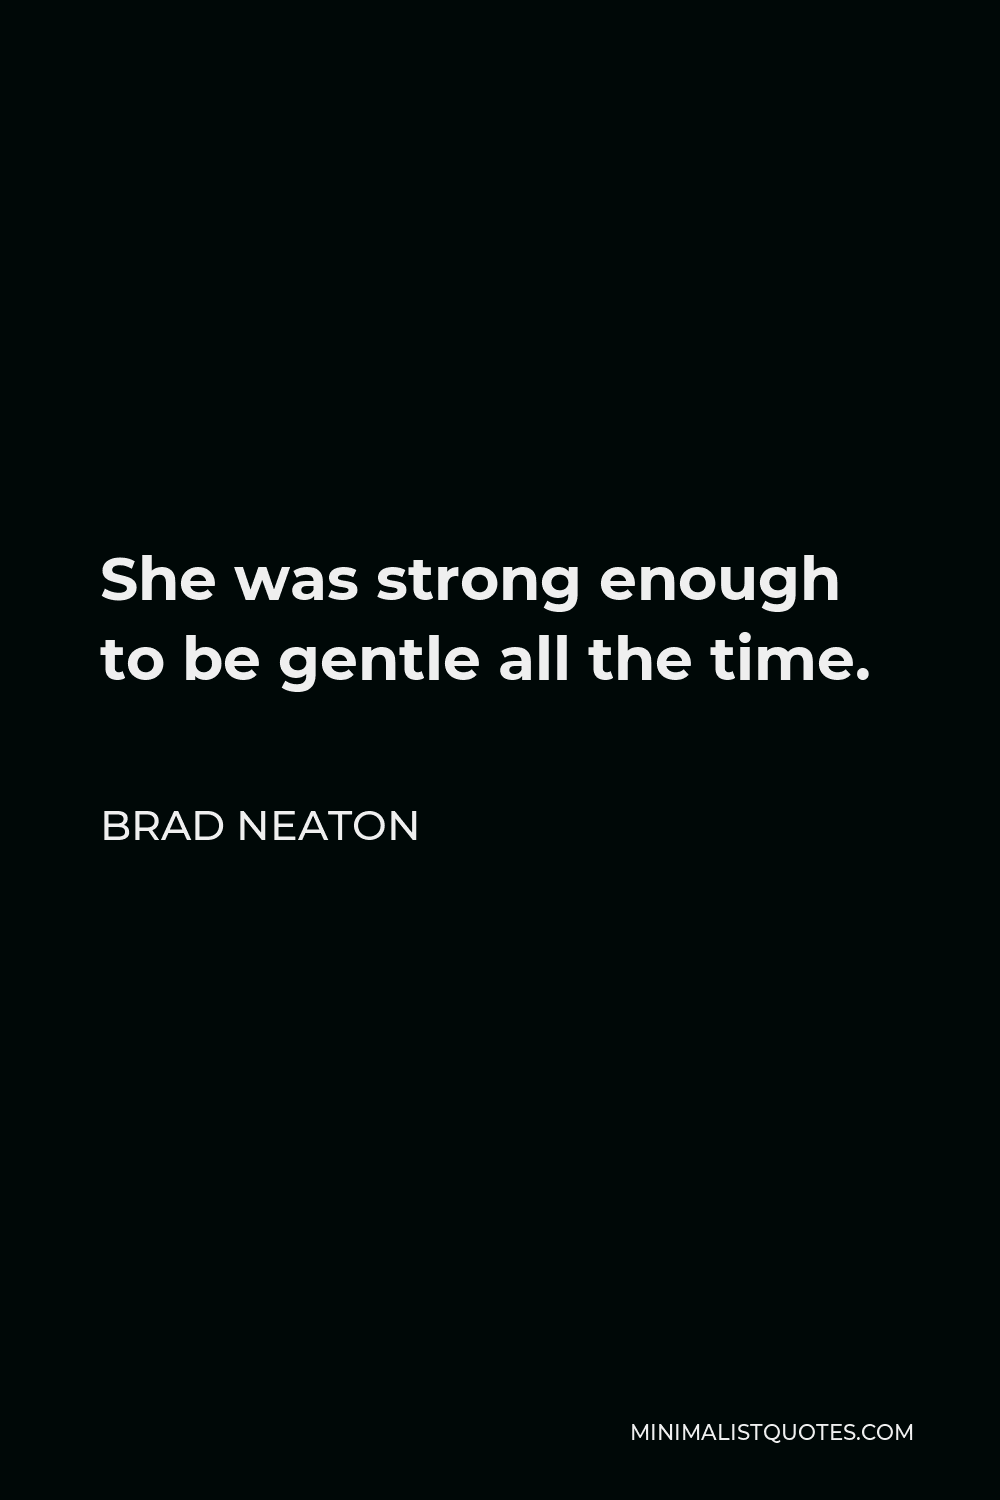 Brad Neaton Quote - She was strong enough to be gentle all the time.